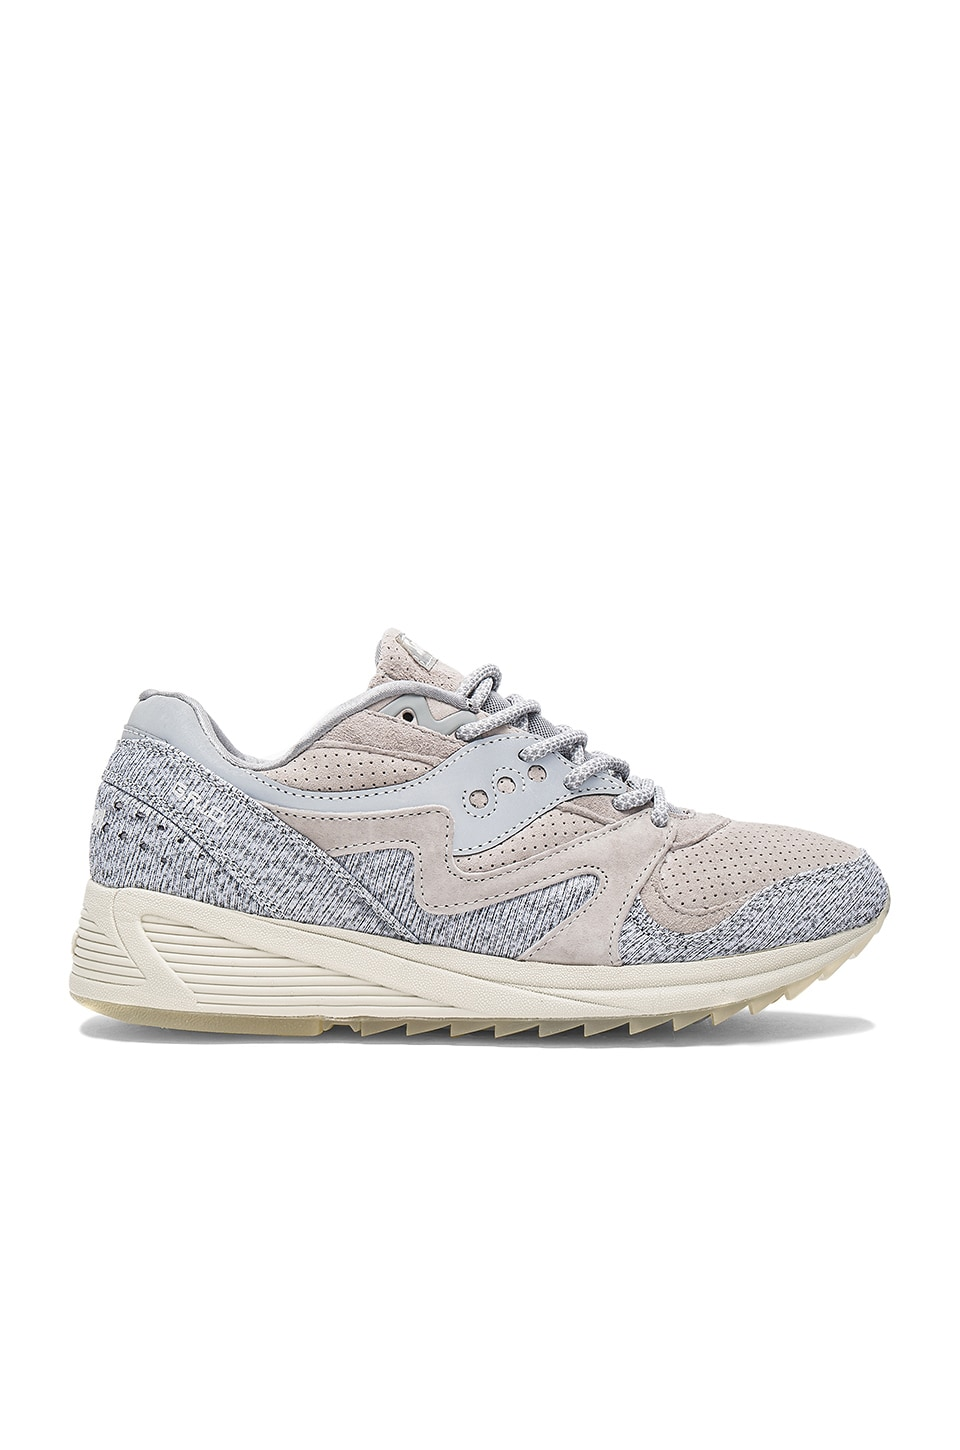 Dirty Snow II Grid 8000 CL by Saucony